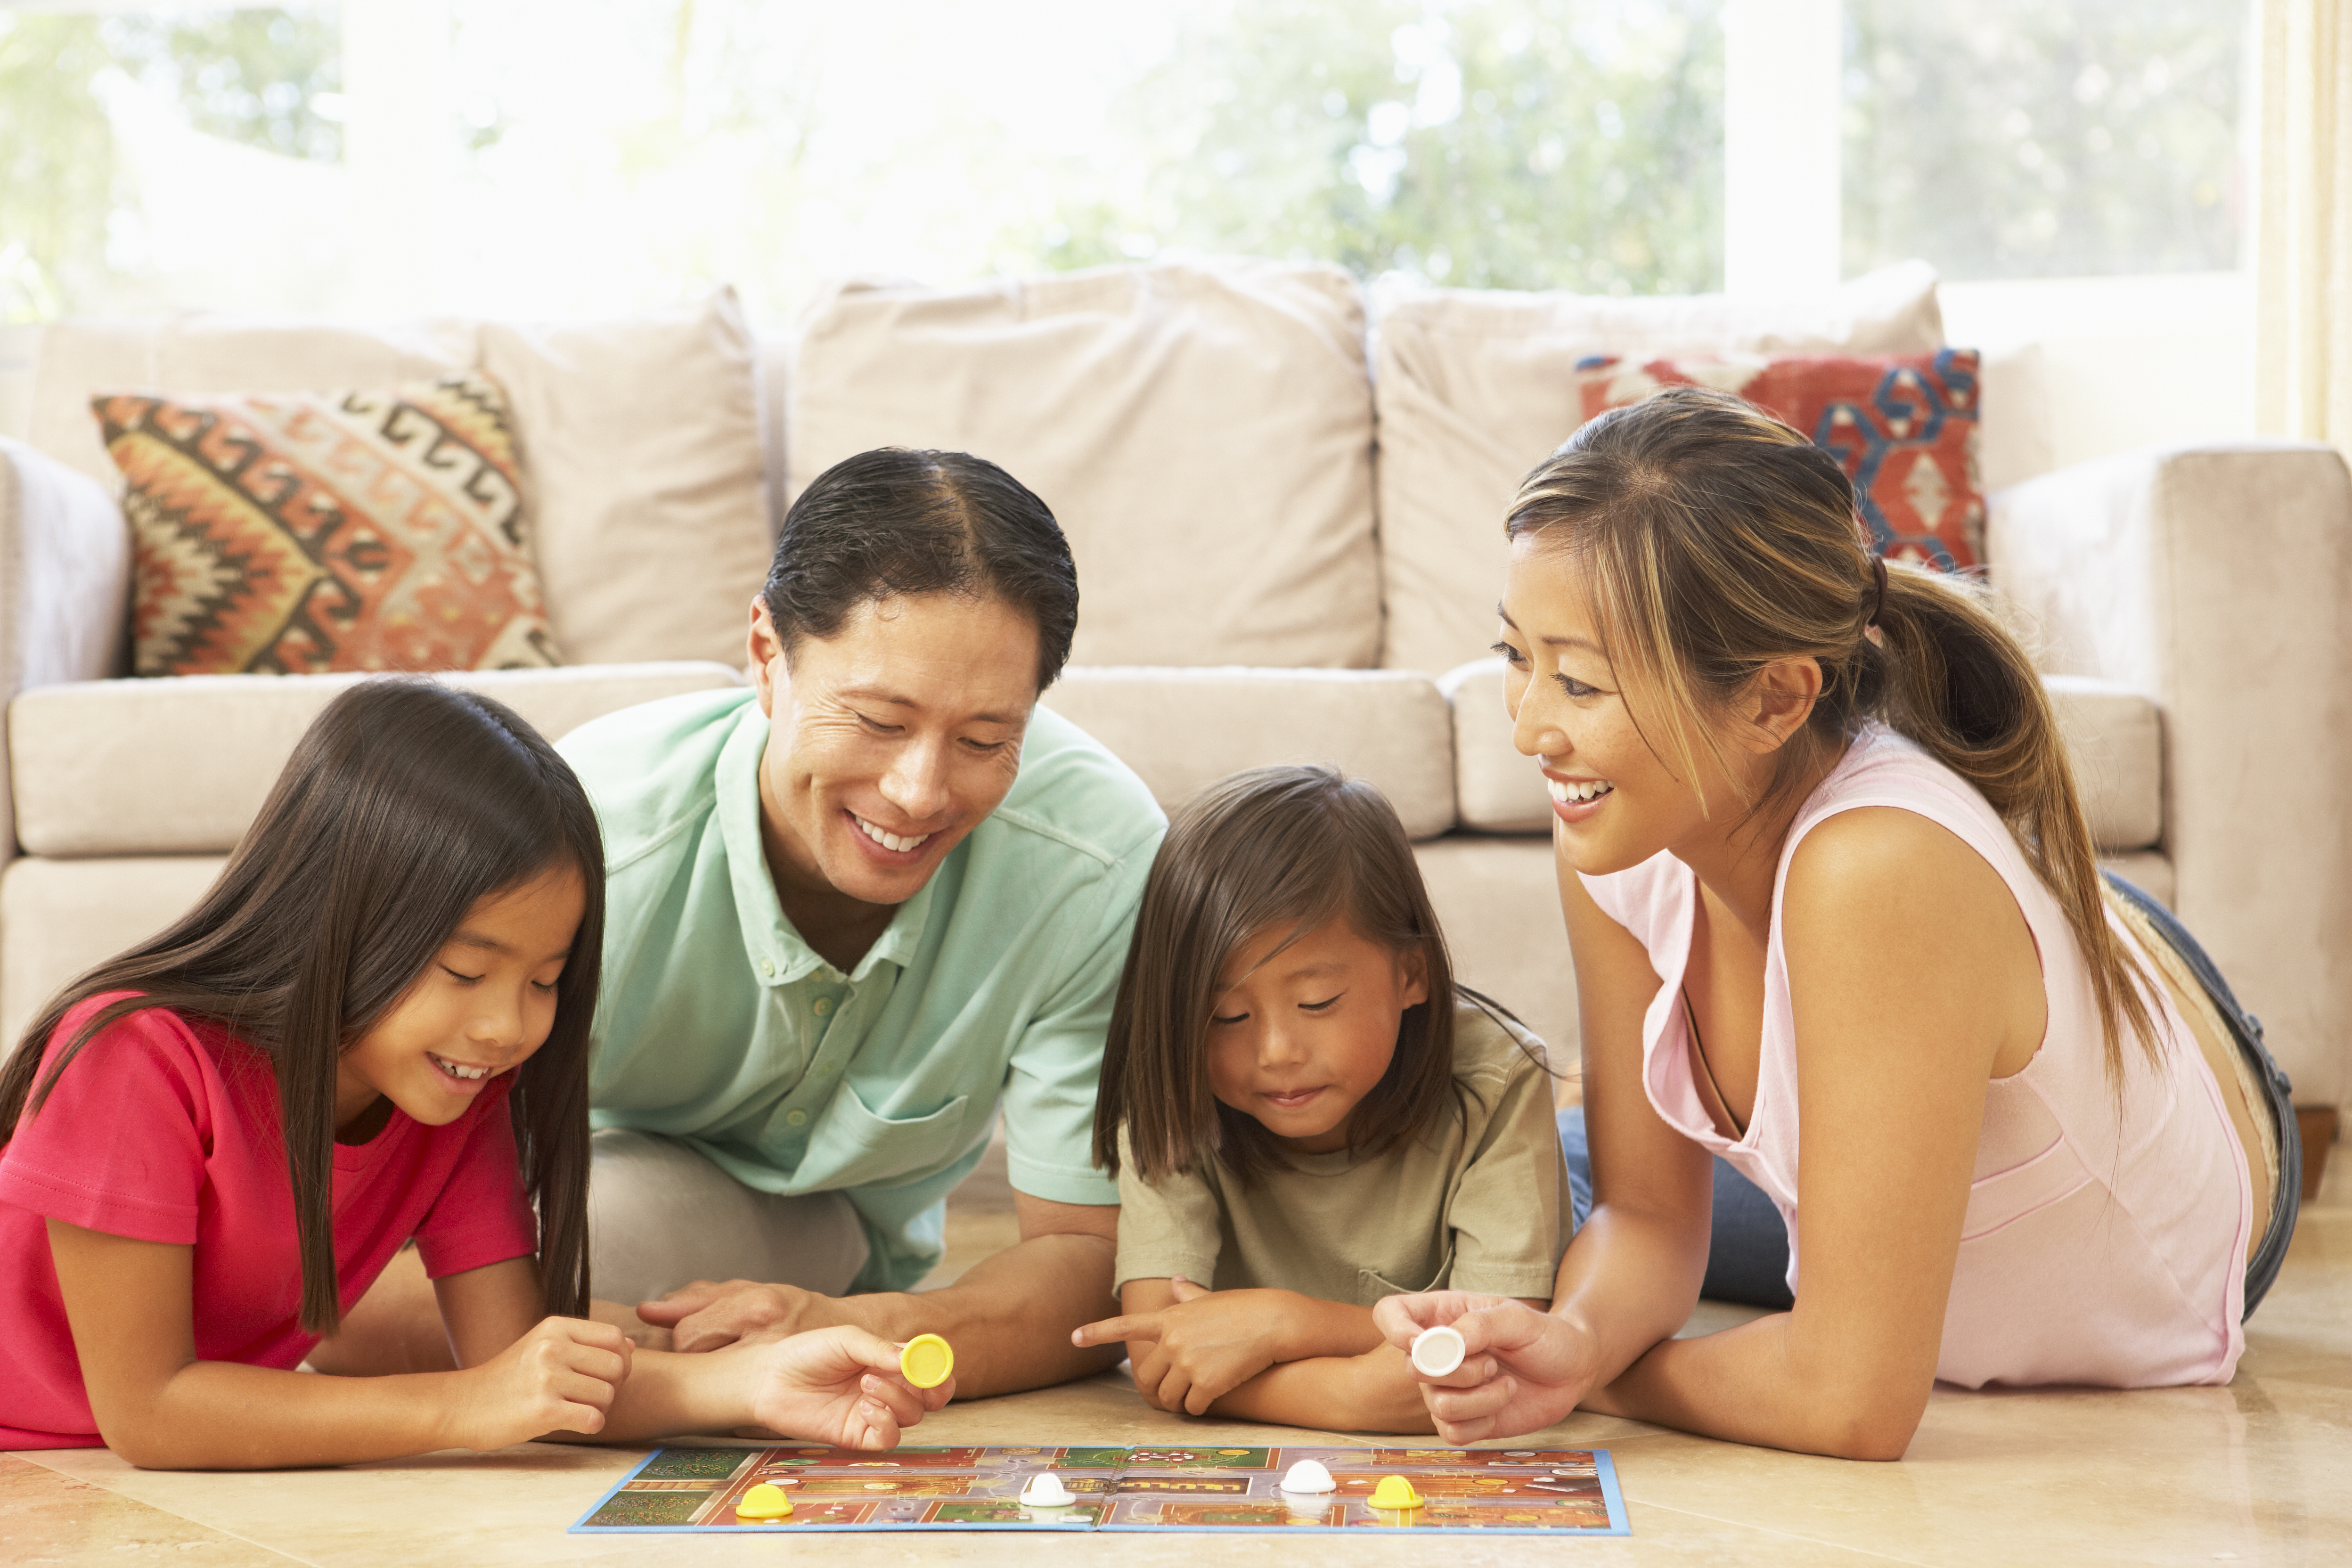 5 Awesome Games to Buy for Family Game Nights Mothering